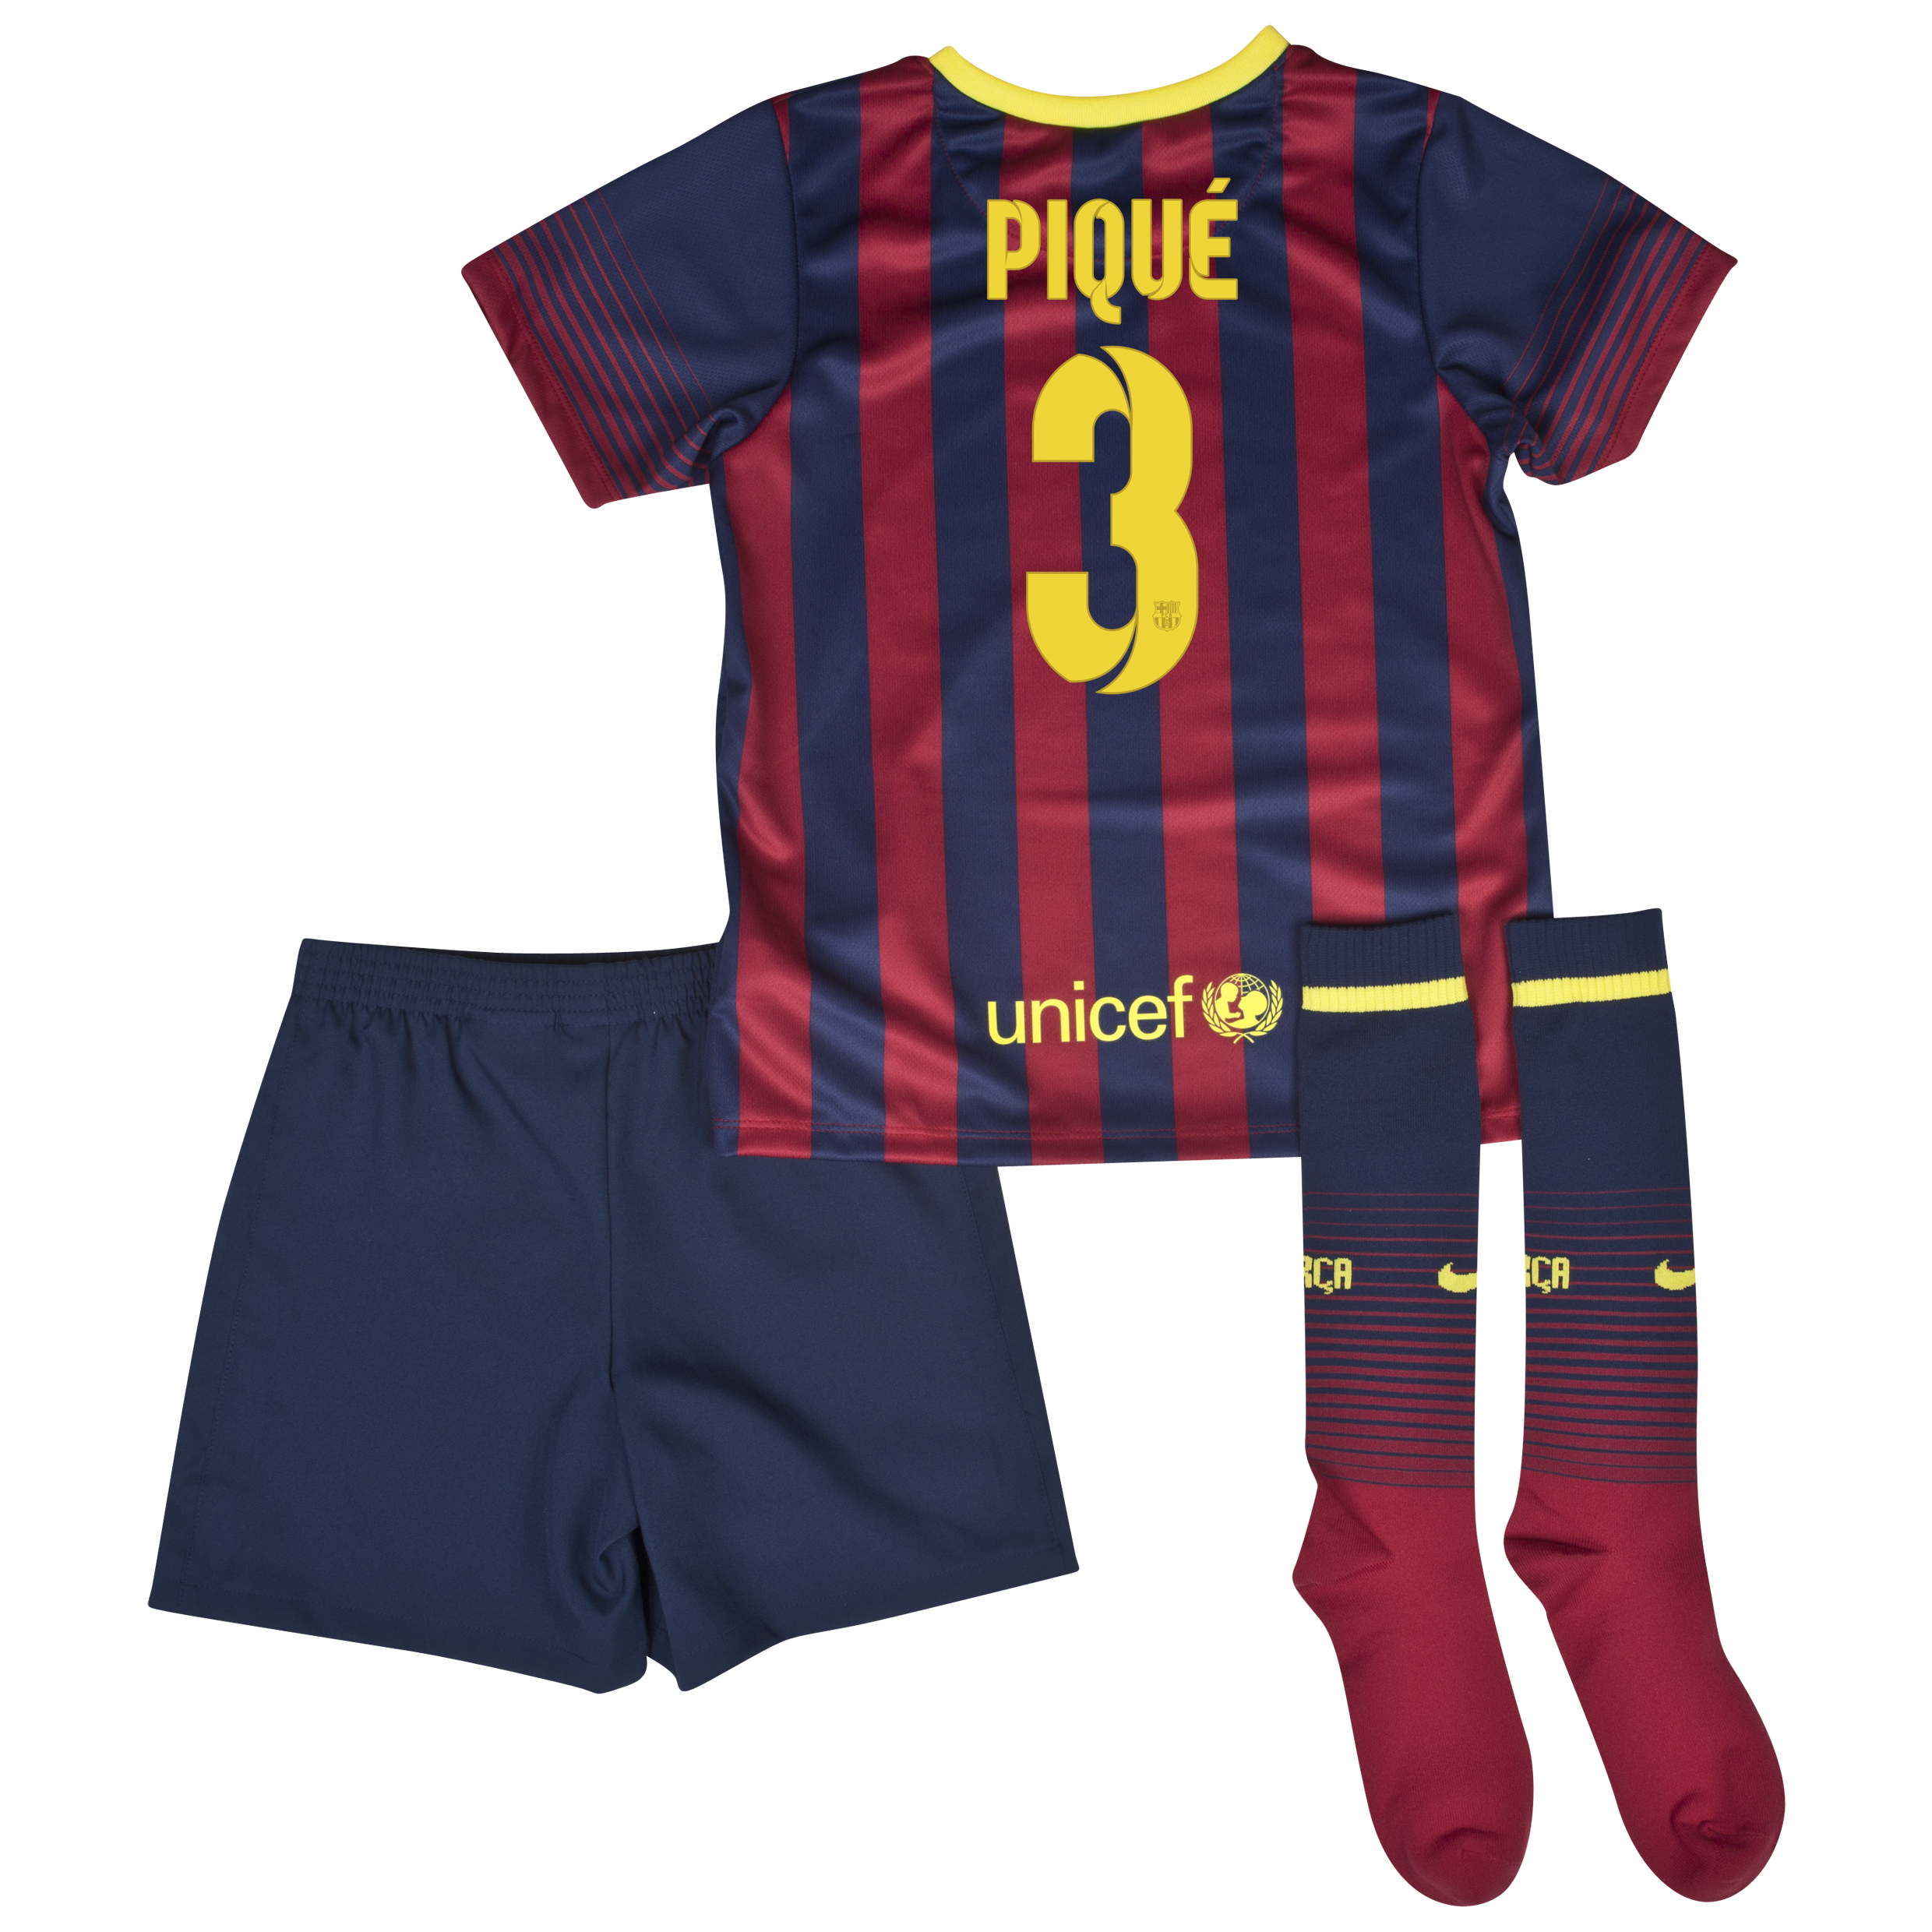 Barcelona Home Kit 2013/14 - Little Boys with Pique 3 printing